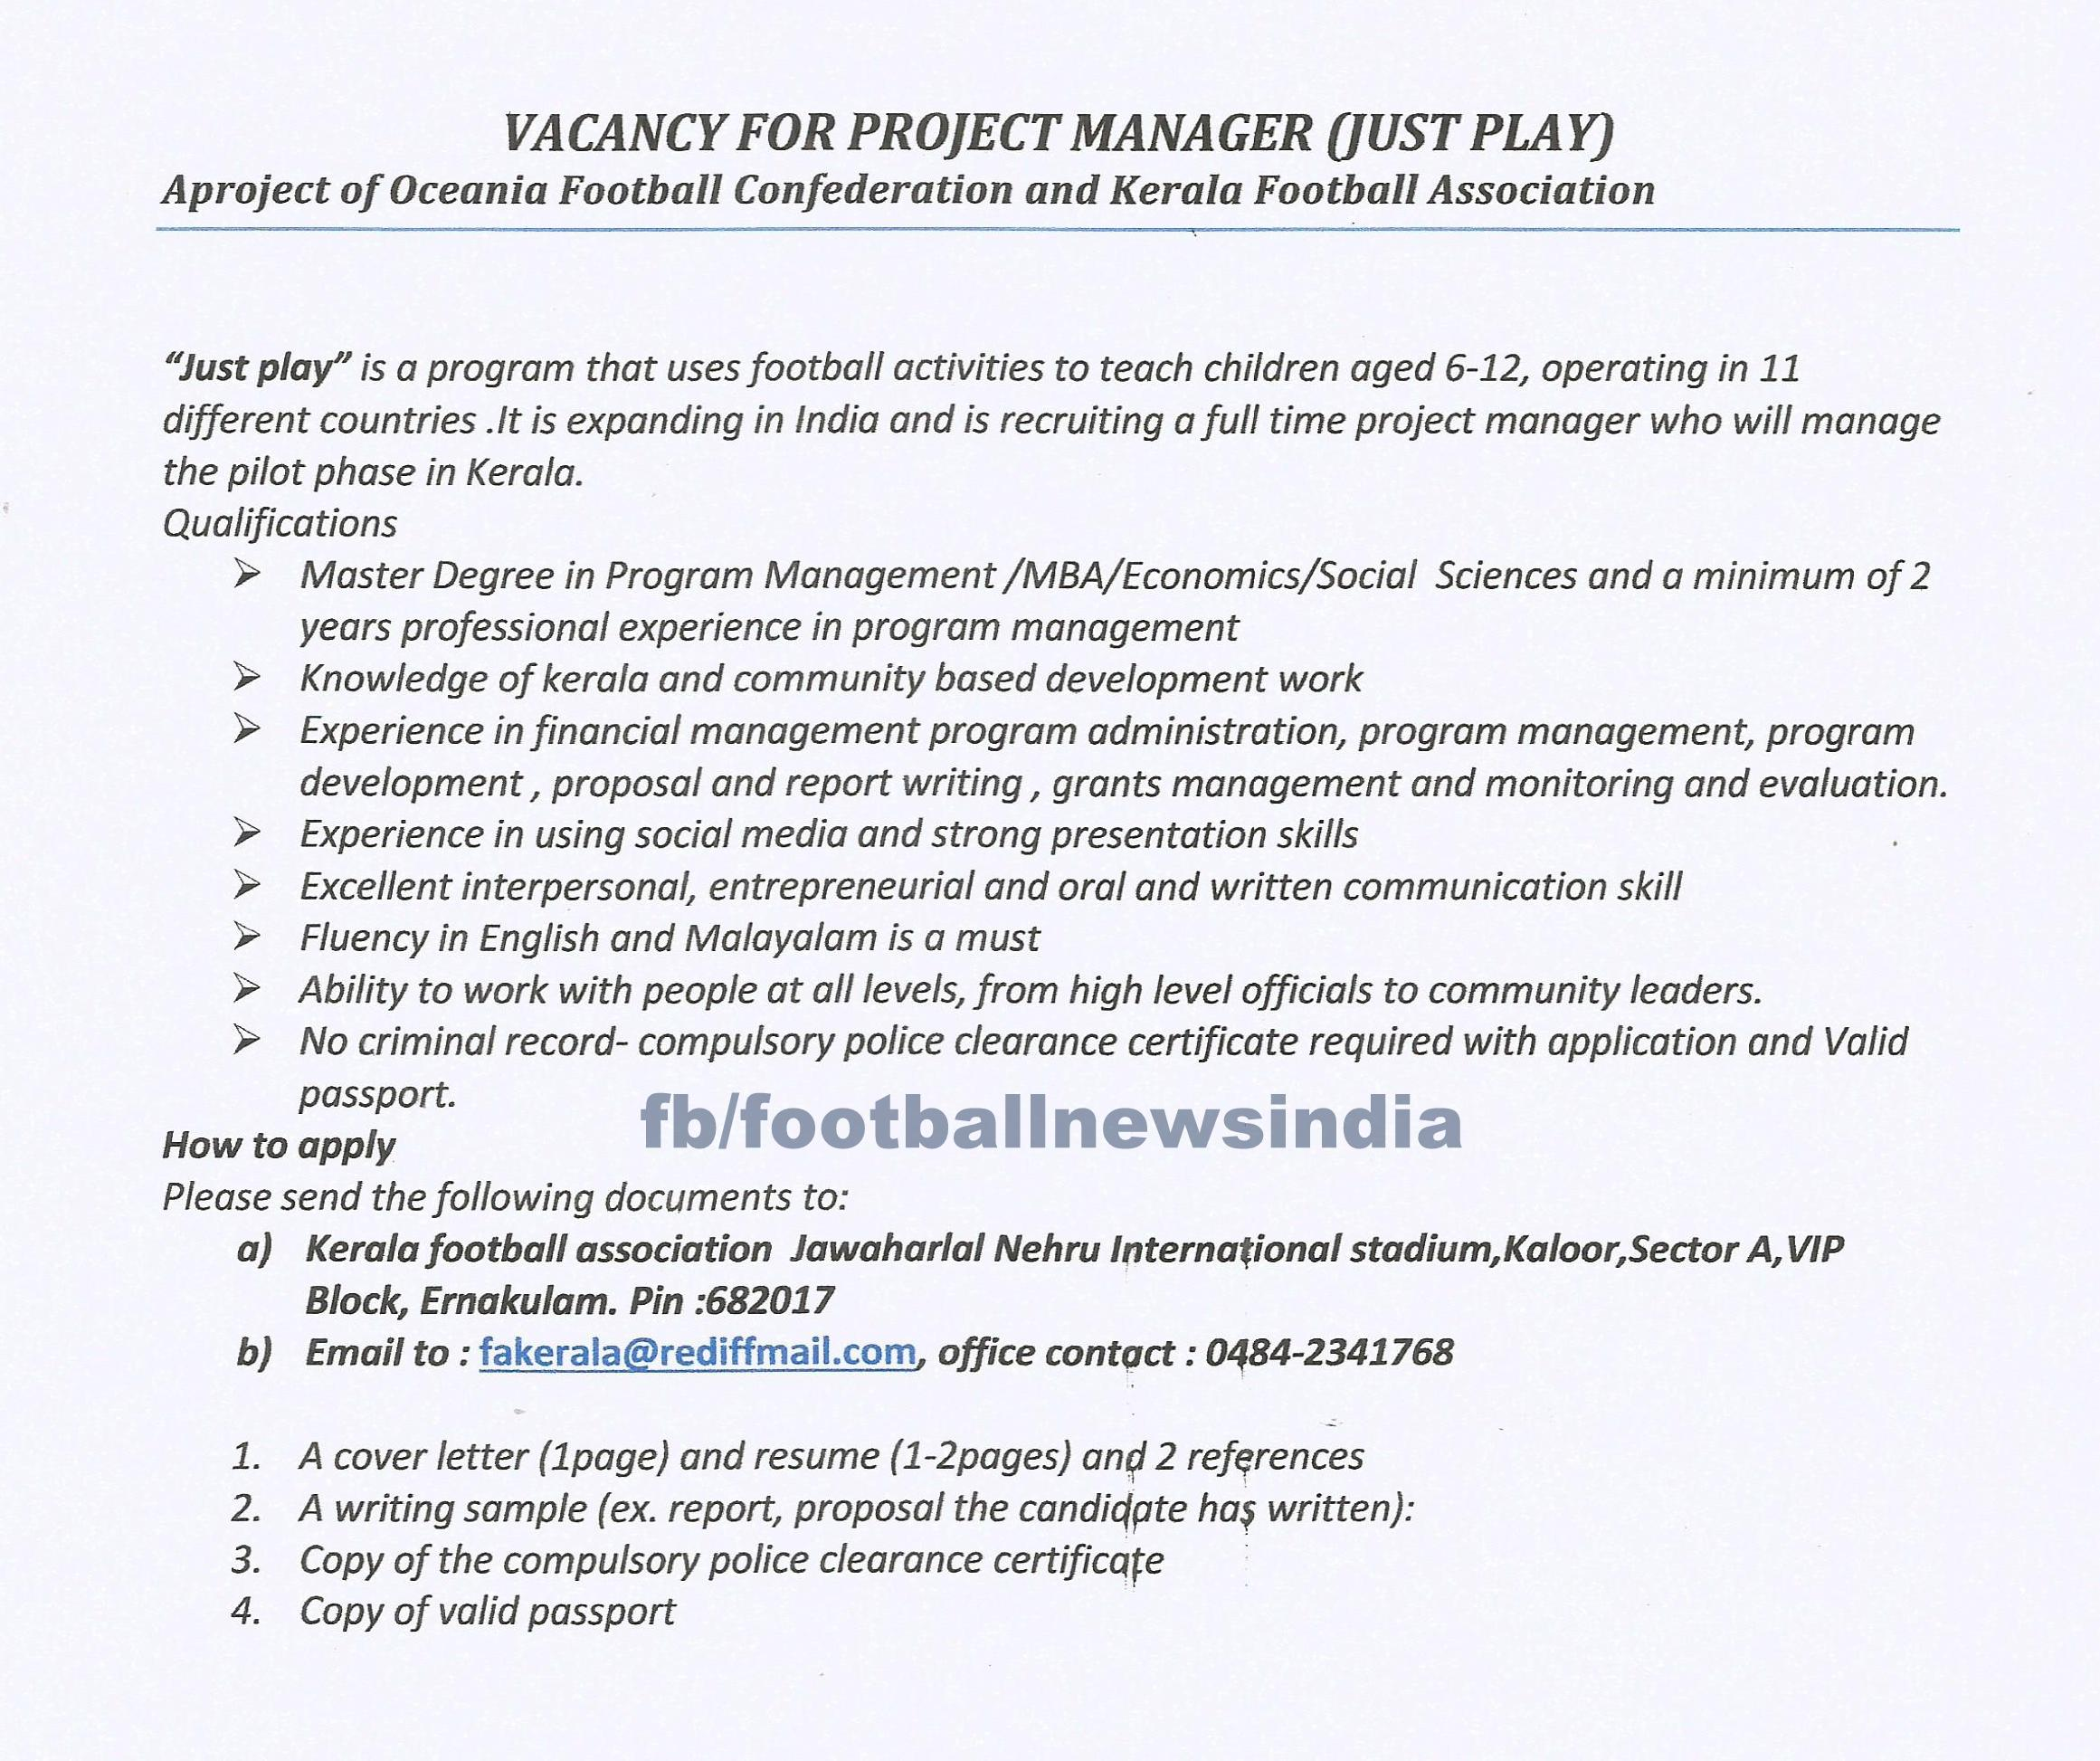 Professional jobs in indian football page 3 indian football forum dx munna219777 atuljg thecheapjerseys Gallery